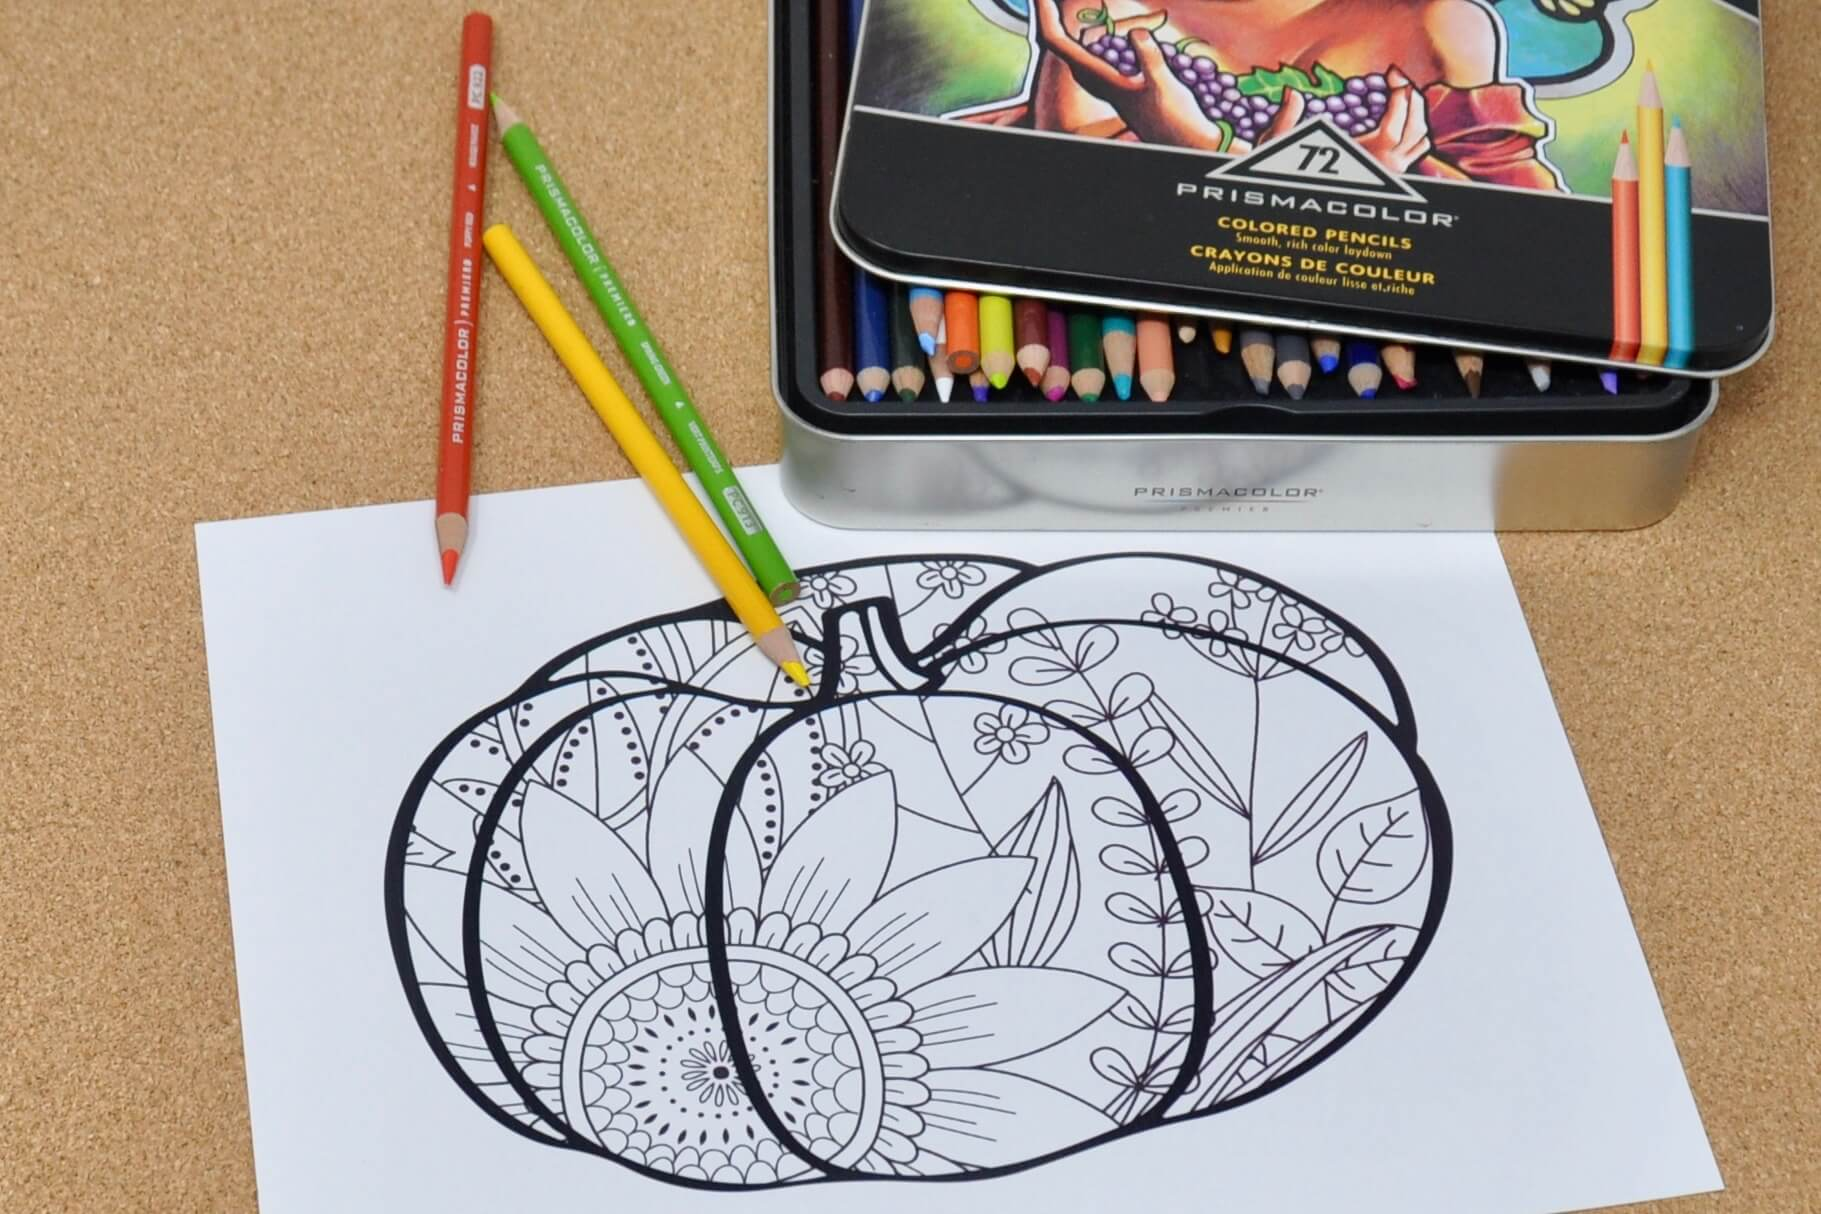 Fall pumpkin zentangle coloring page and colored pencils.